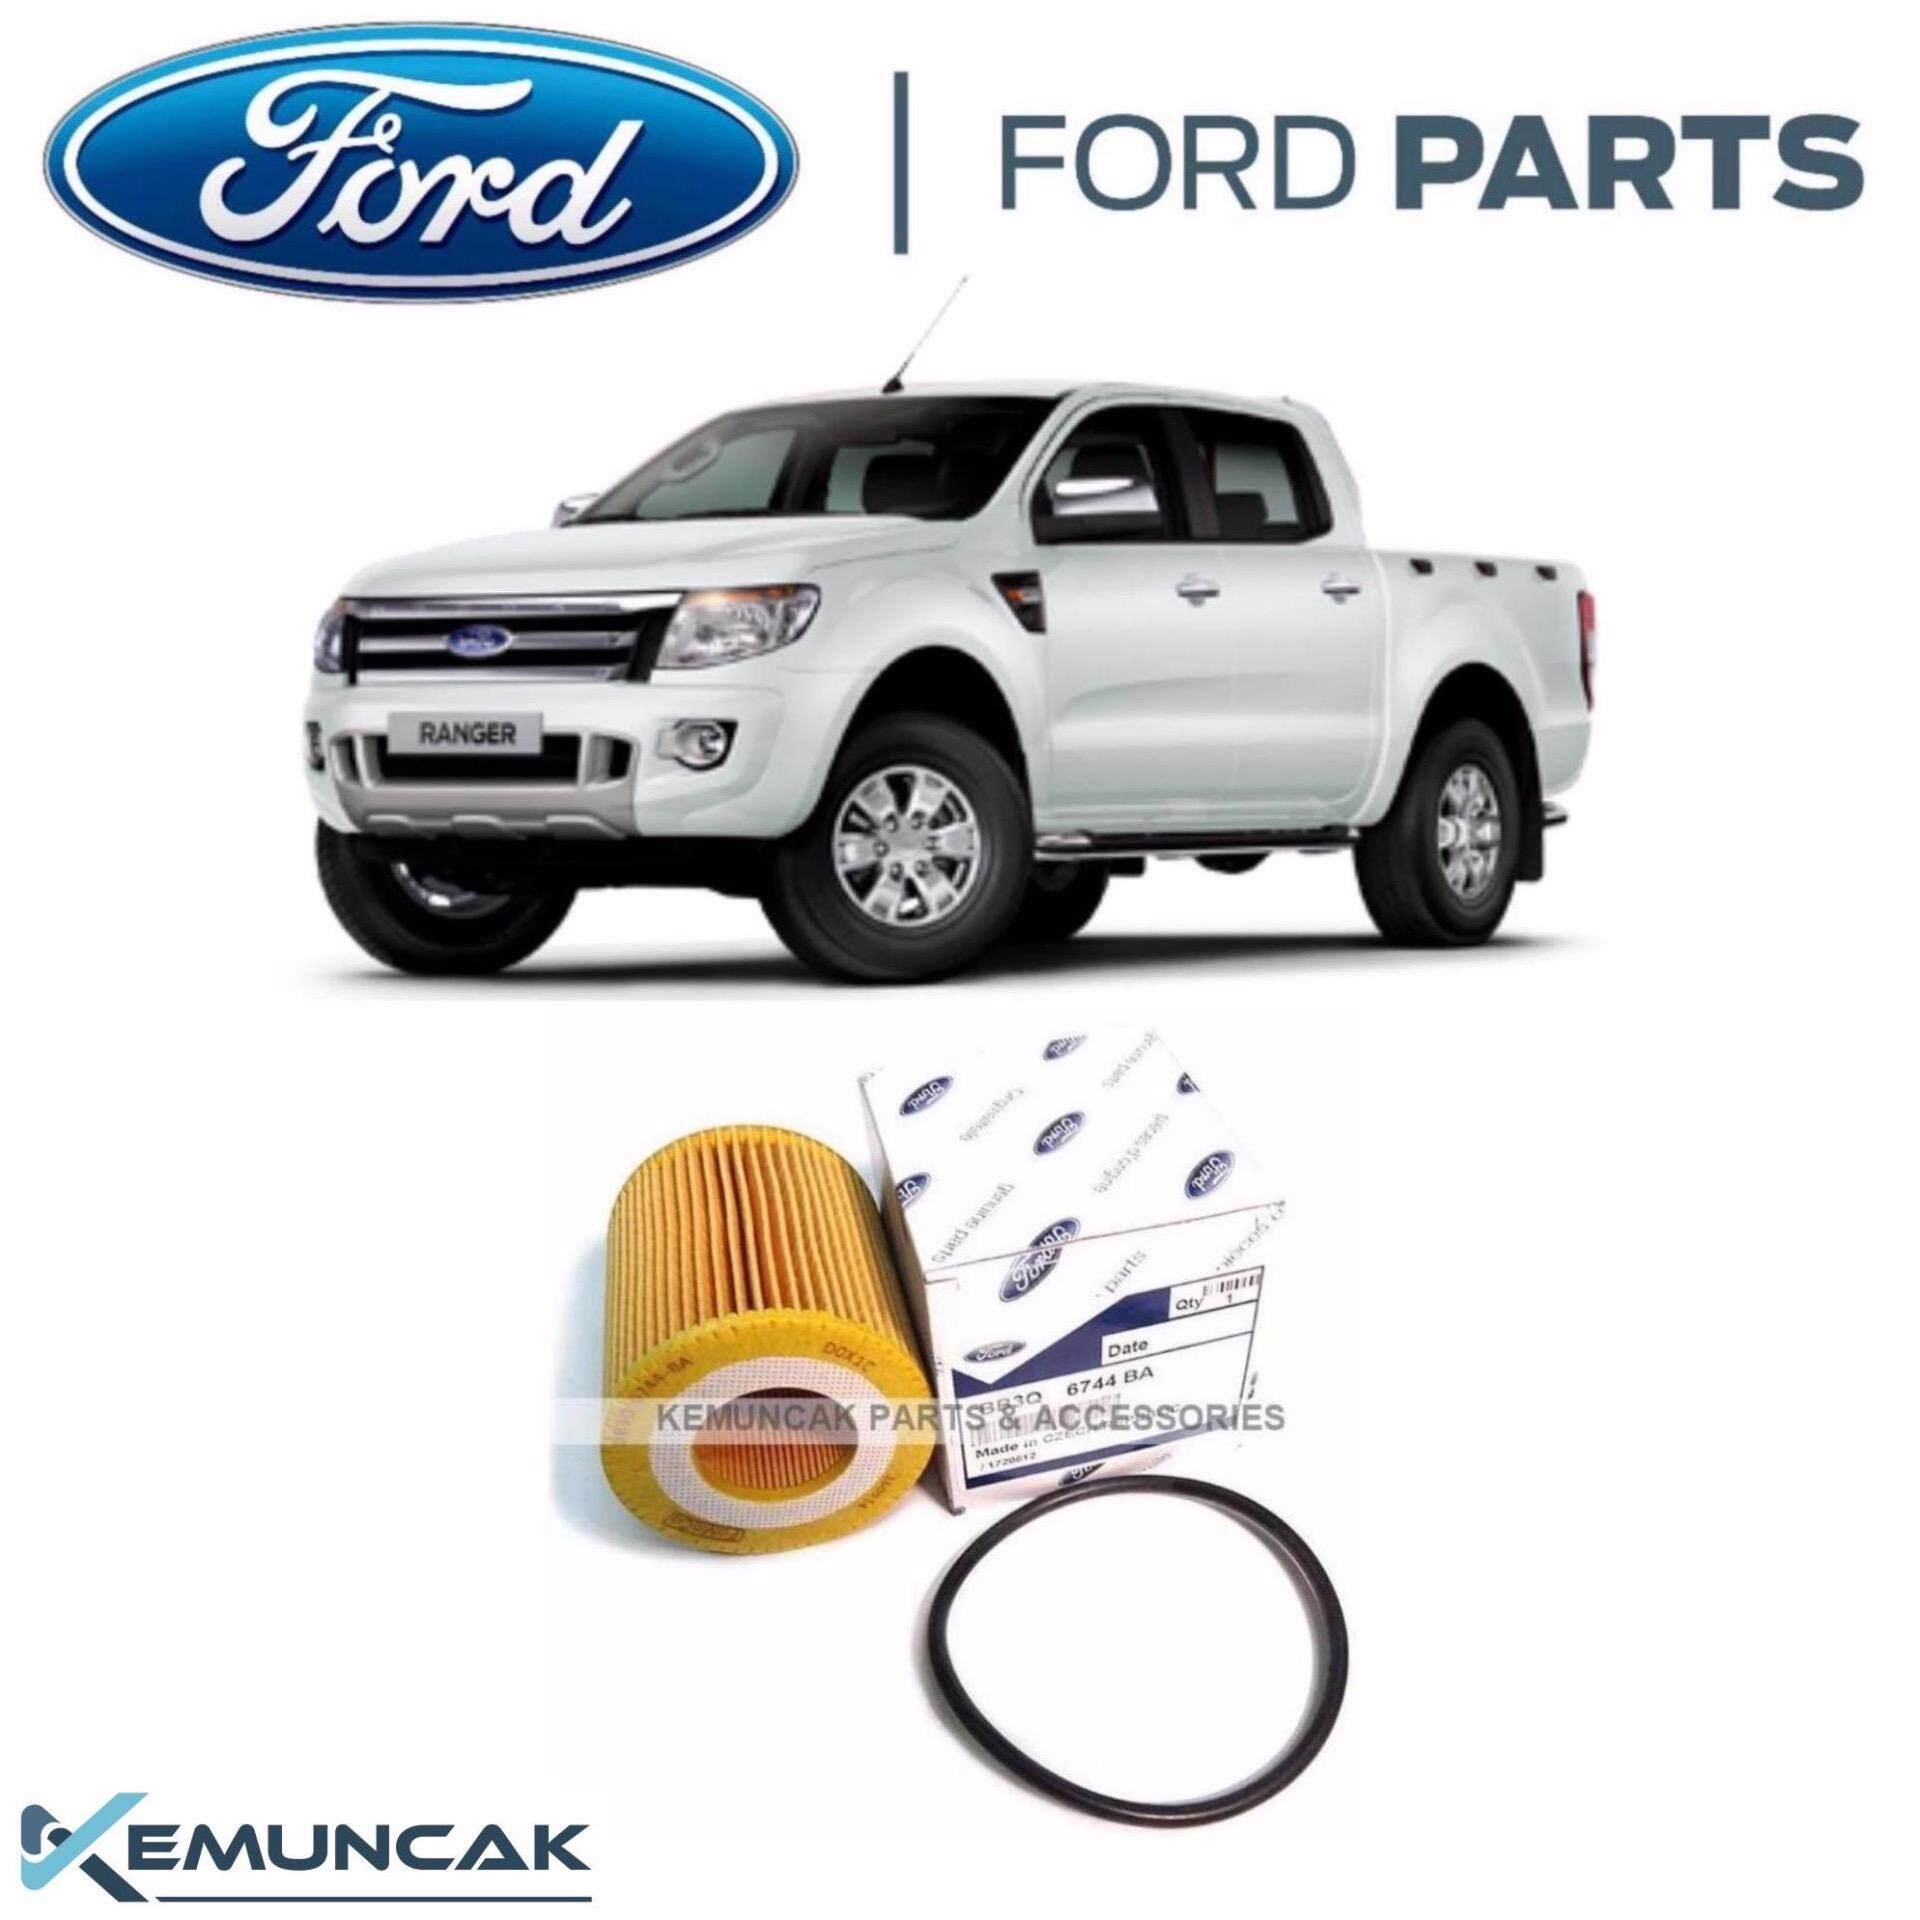 2012-2017 Service Kit Ford Fiesta MK7 1.0 EcoBoost Sport Huile Filtres à Air Bougies